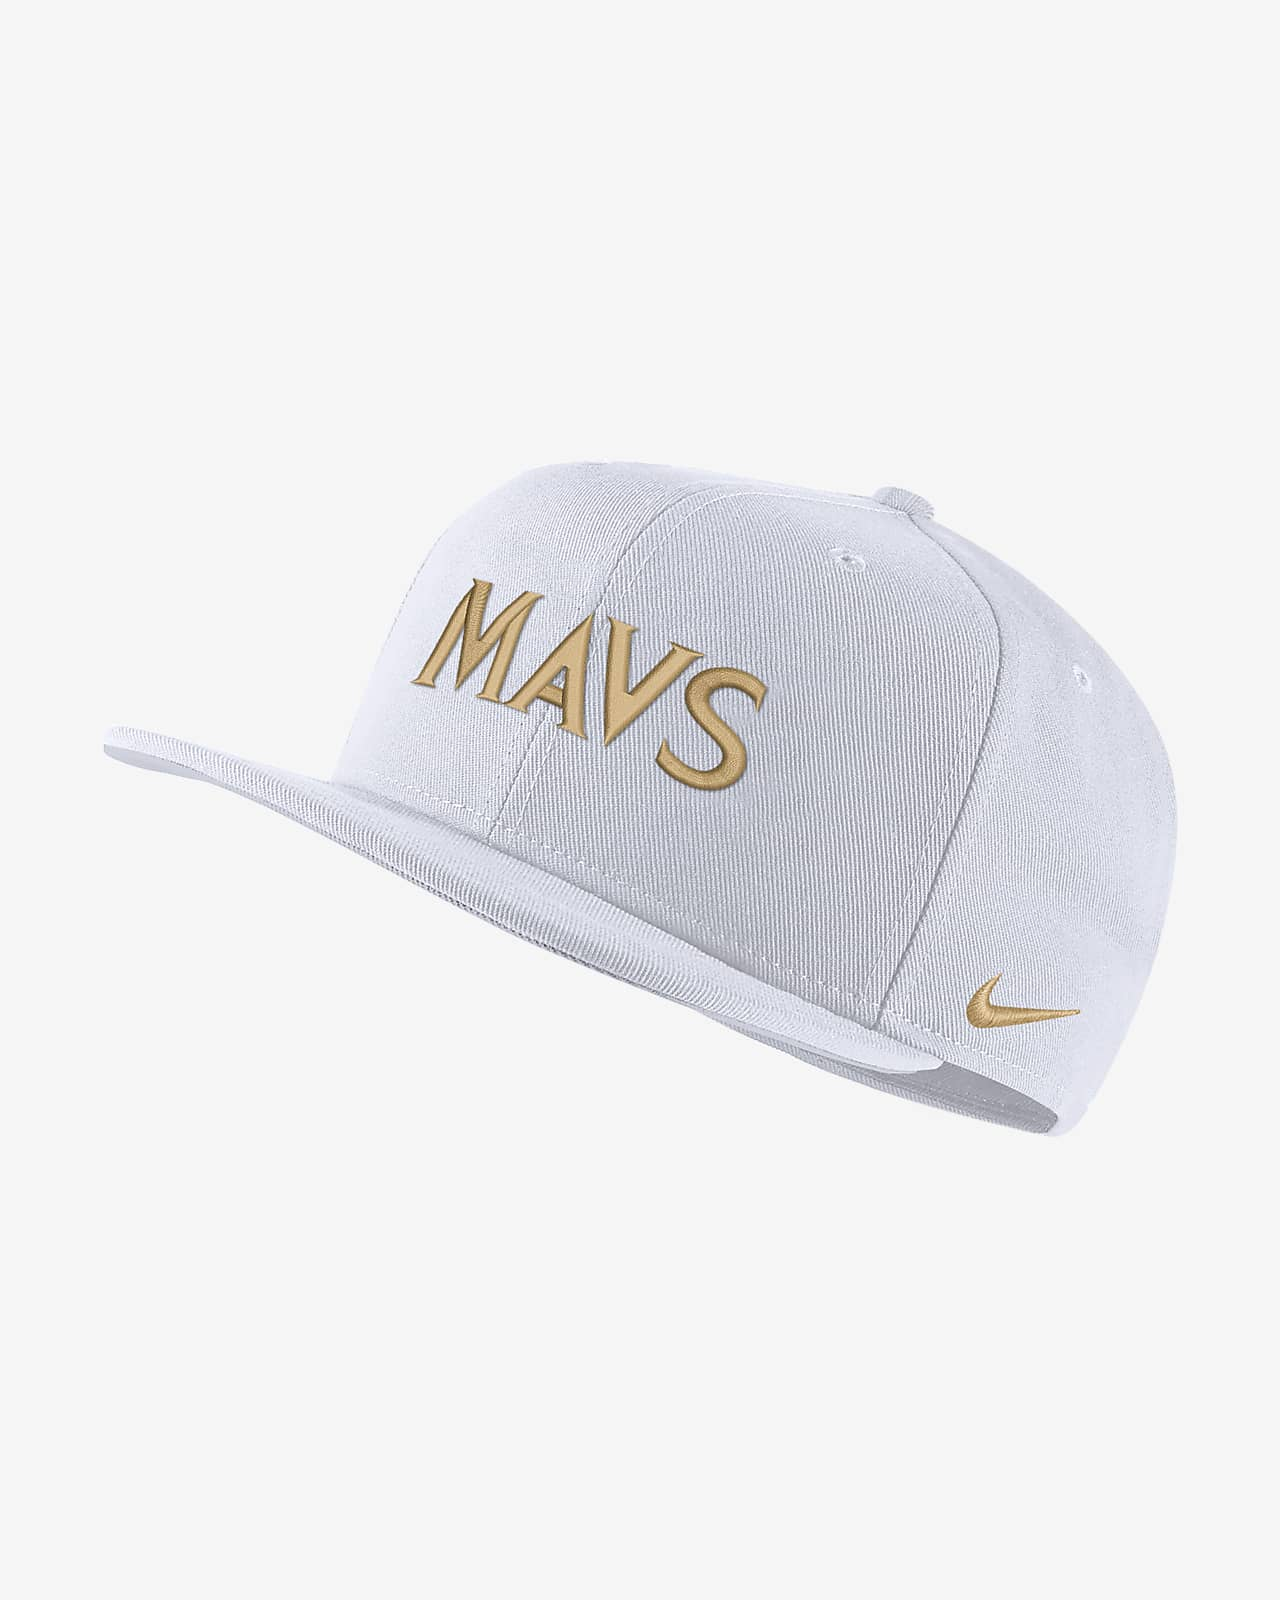 Dallas Mavericks City Edition Nike Pro NBA Cap